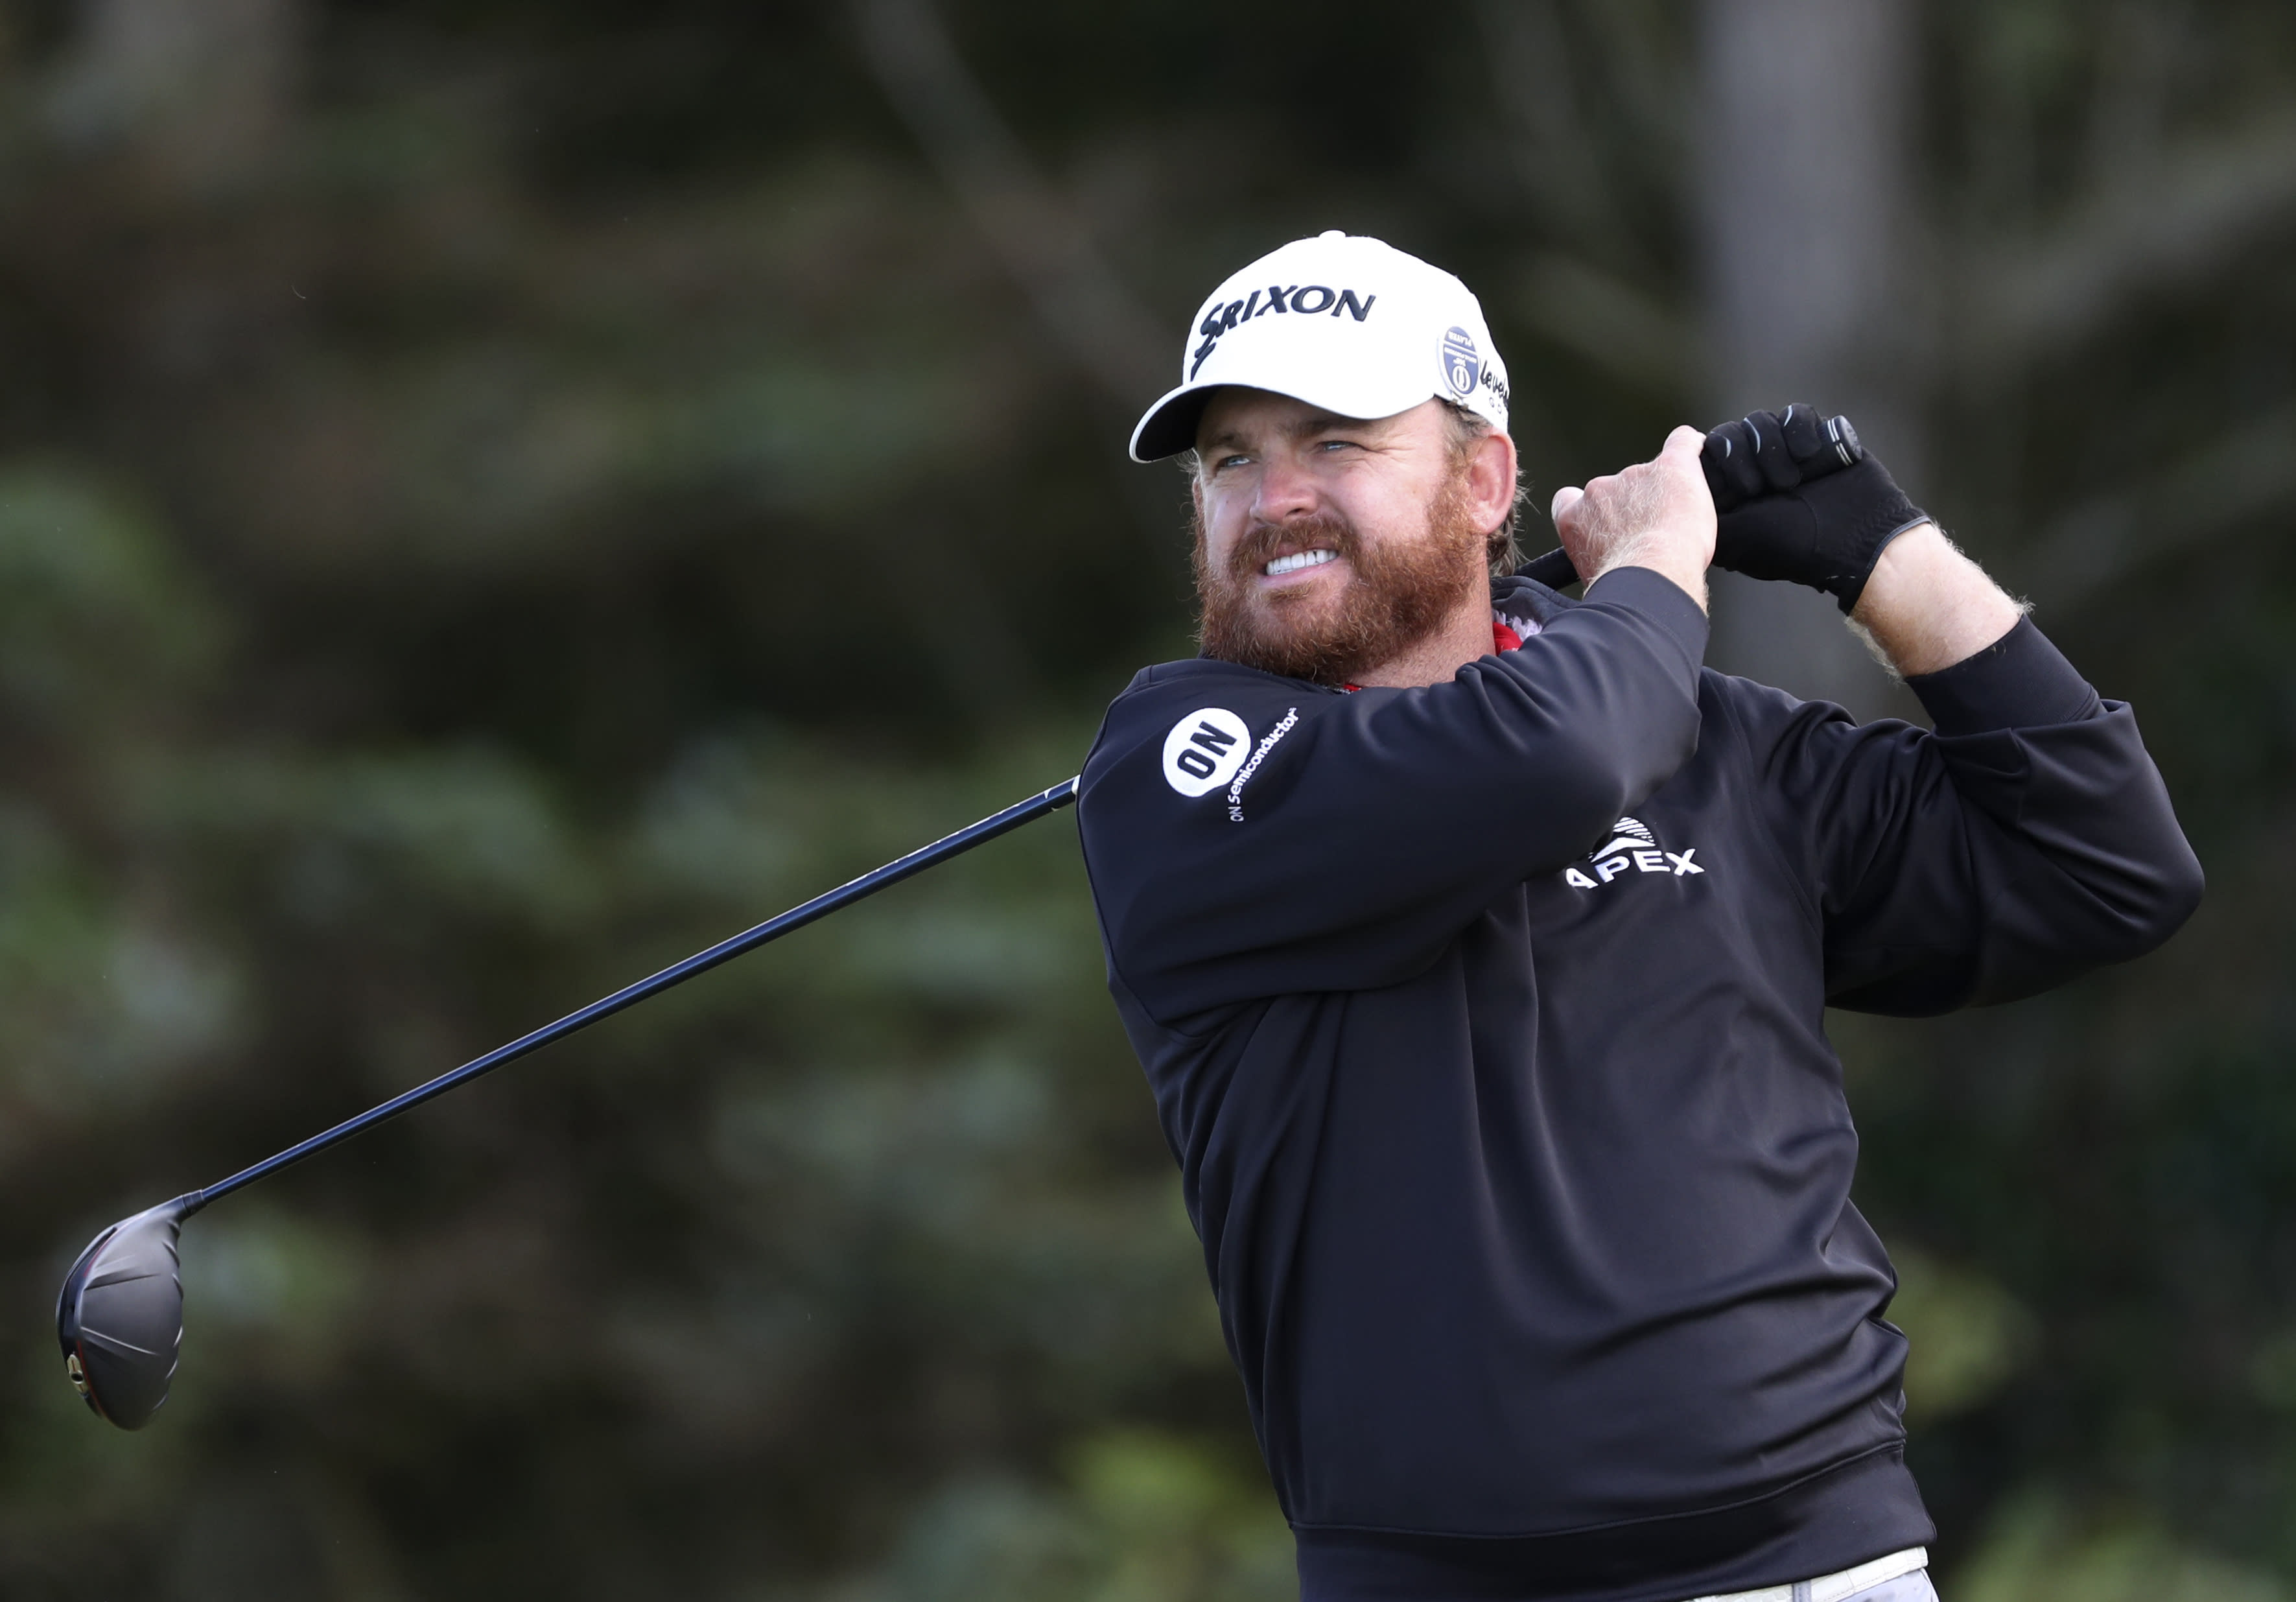 J.B. Holmes of the United States tees off on the 5th hole during the third round of the British Open Golf Championships at Royal Portrush in Northern Ireland, Saturday, July 20, 2019.(AP Photo/Peter Morrison)